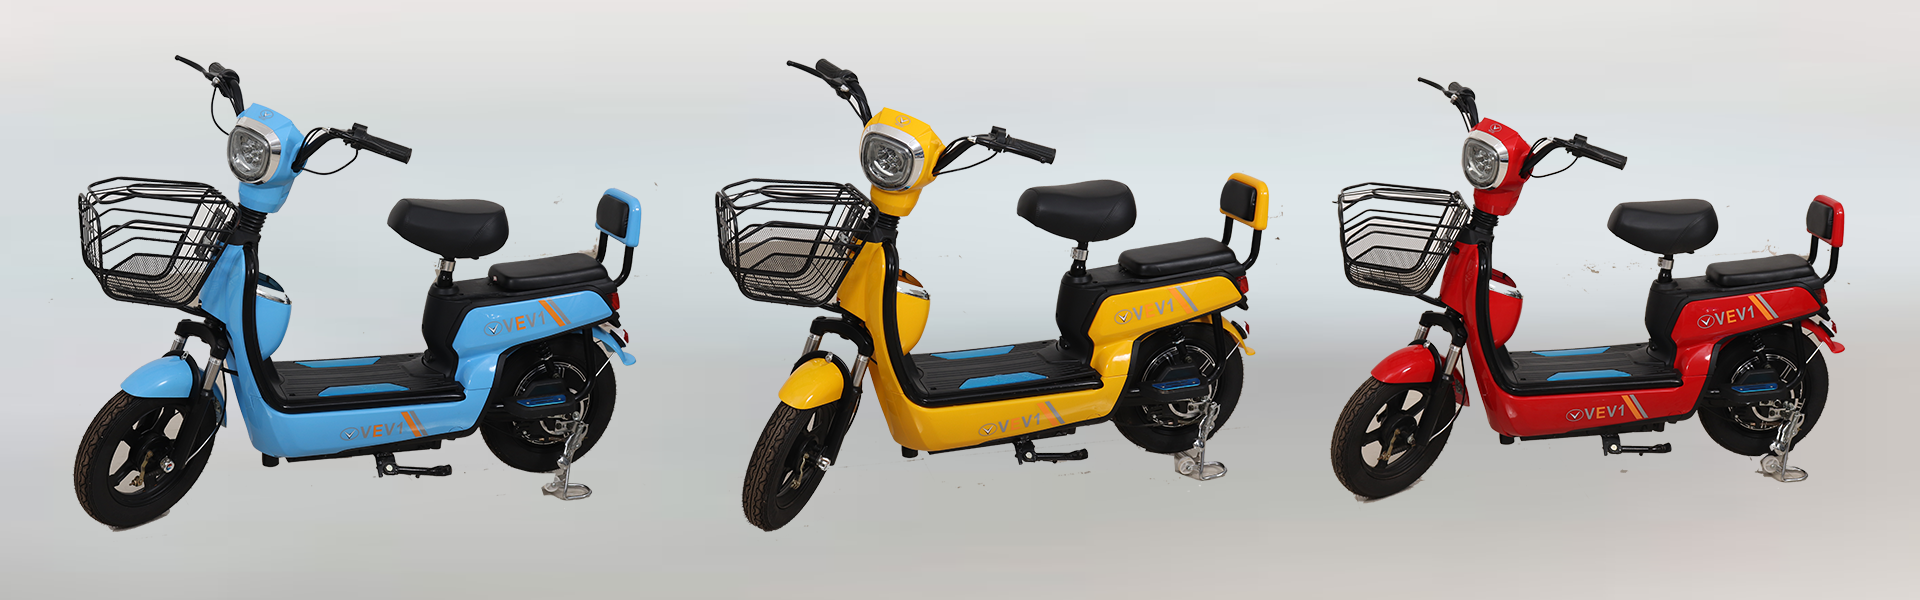 electric moped scooter sales